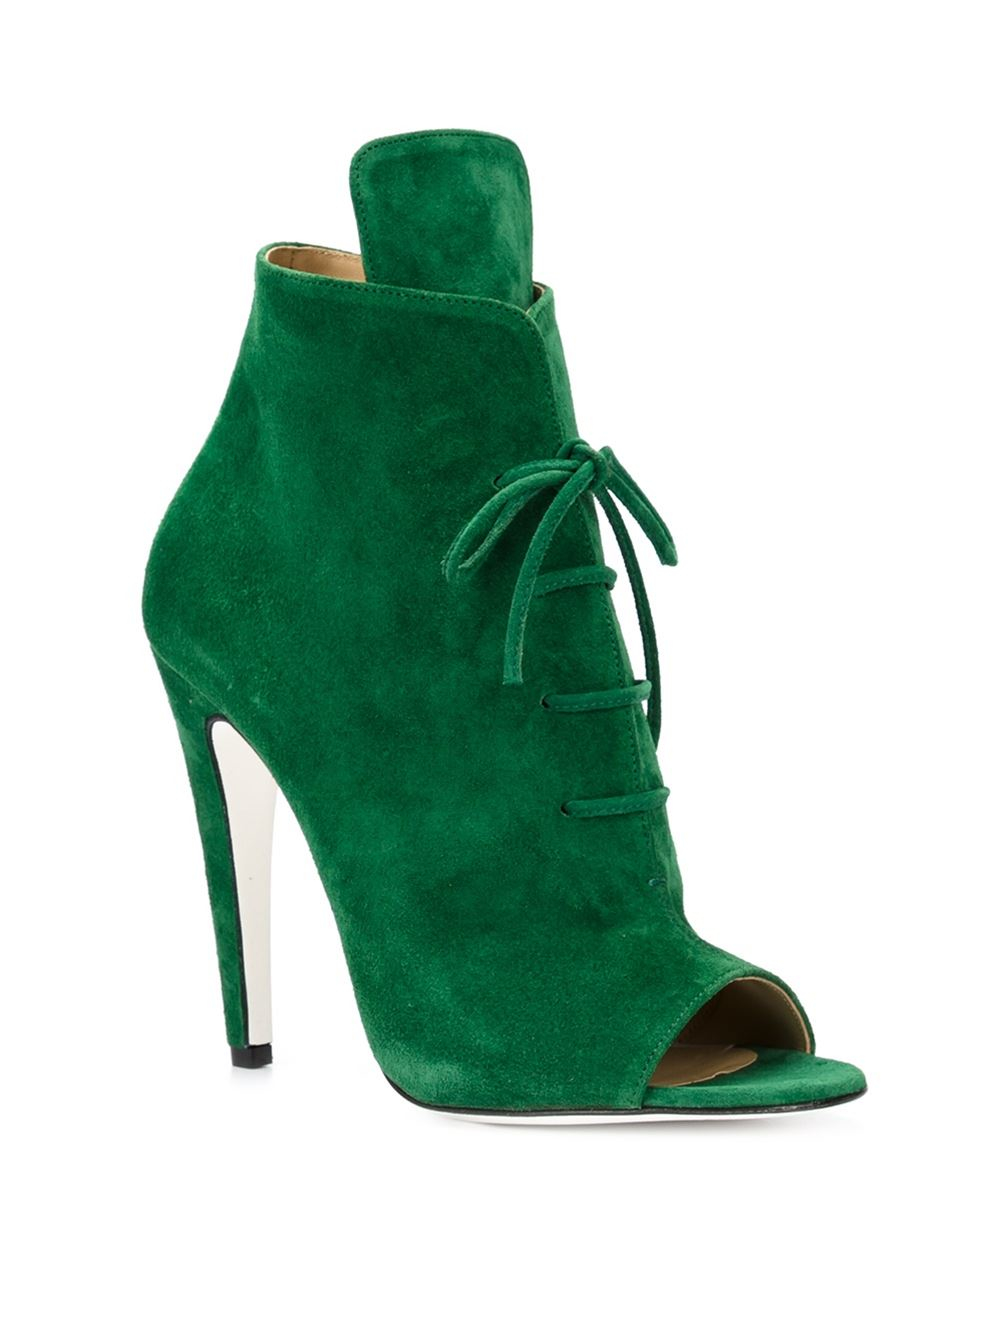 Off-White c/o Virgil Abloh Peep-Toe Lace-up Boots in Green